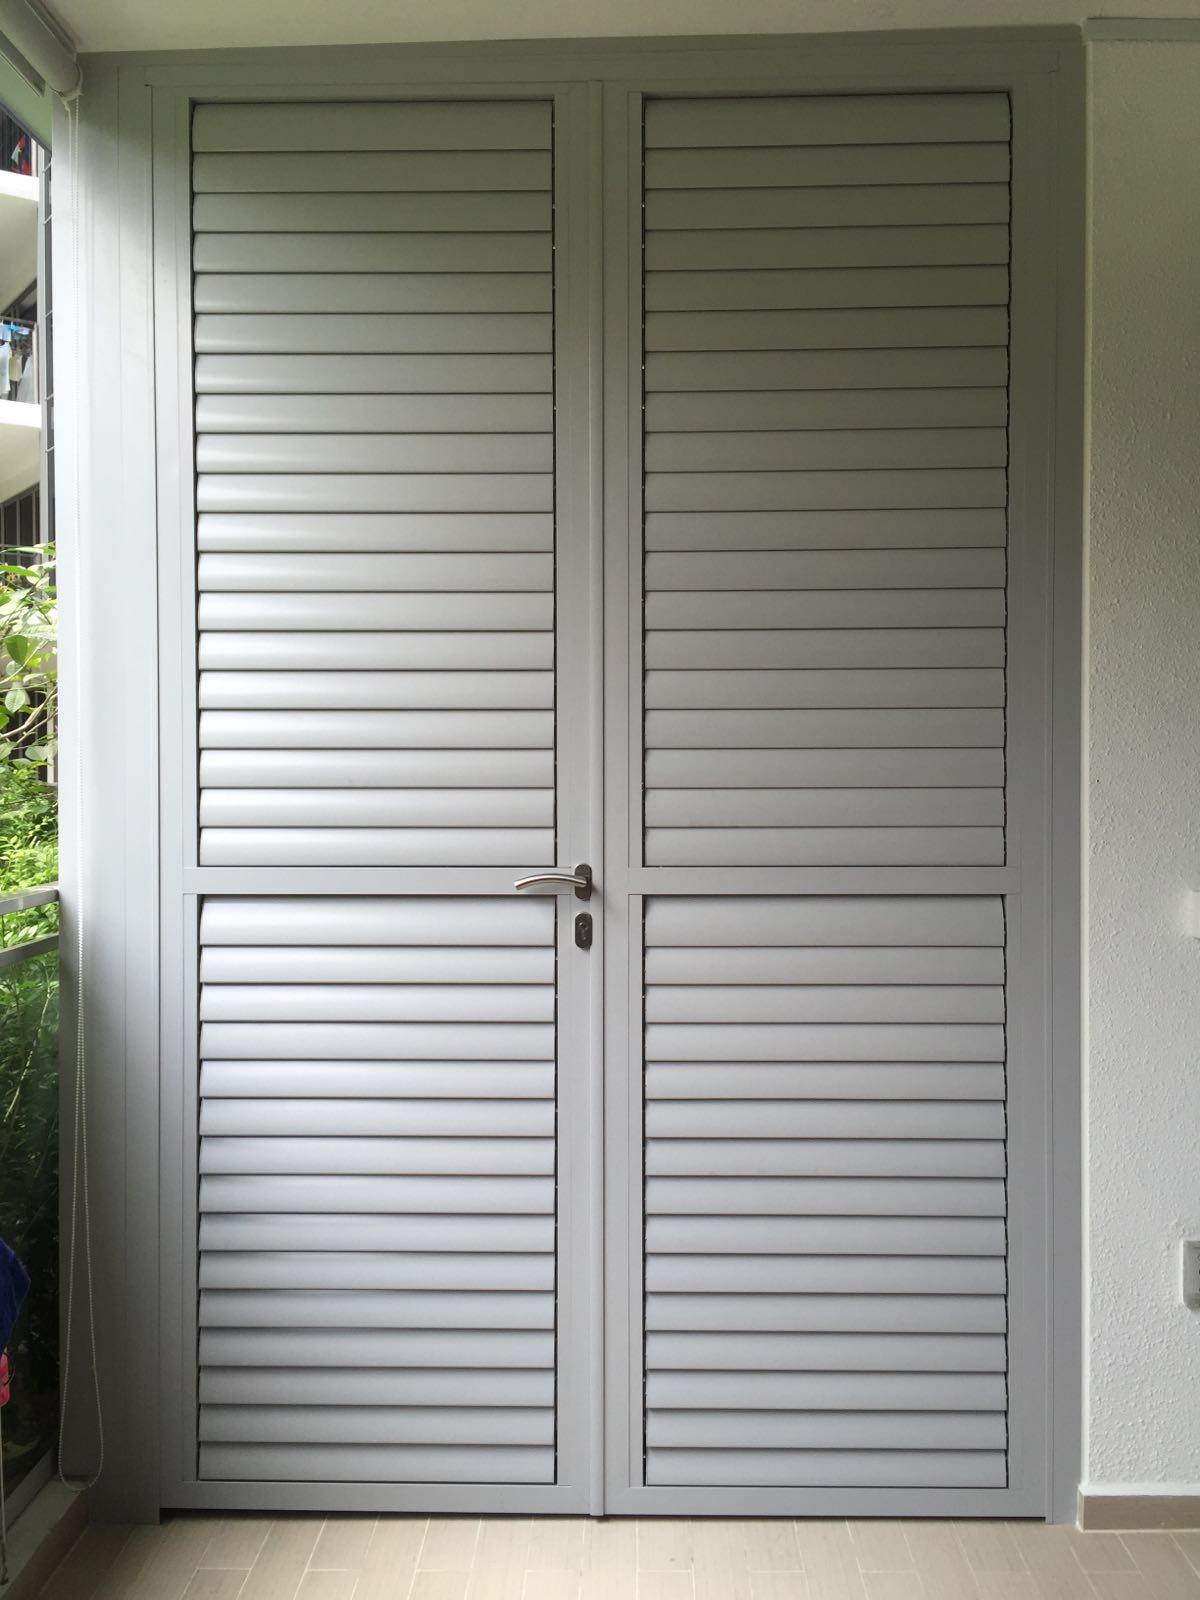 Aluminium louver door commercial aluminium louvers for Location of doors and windows